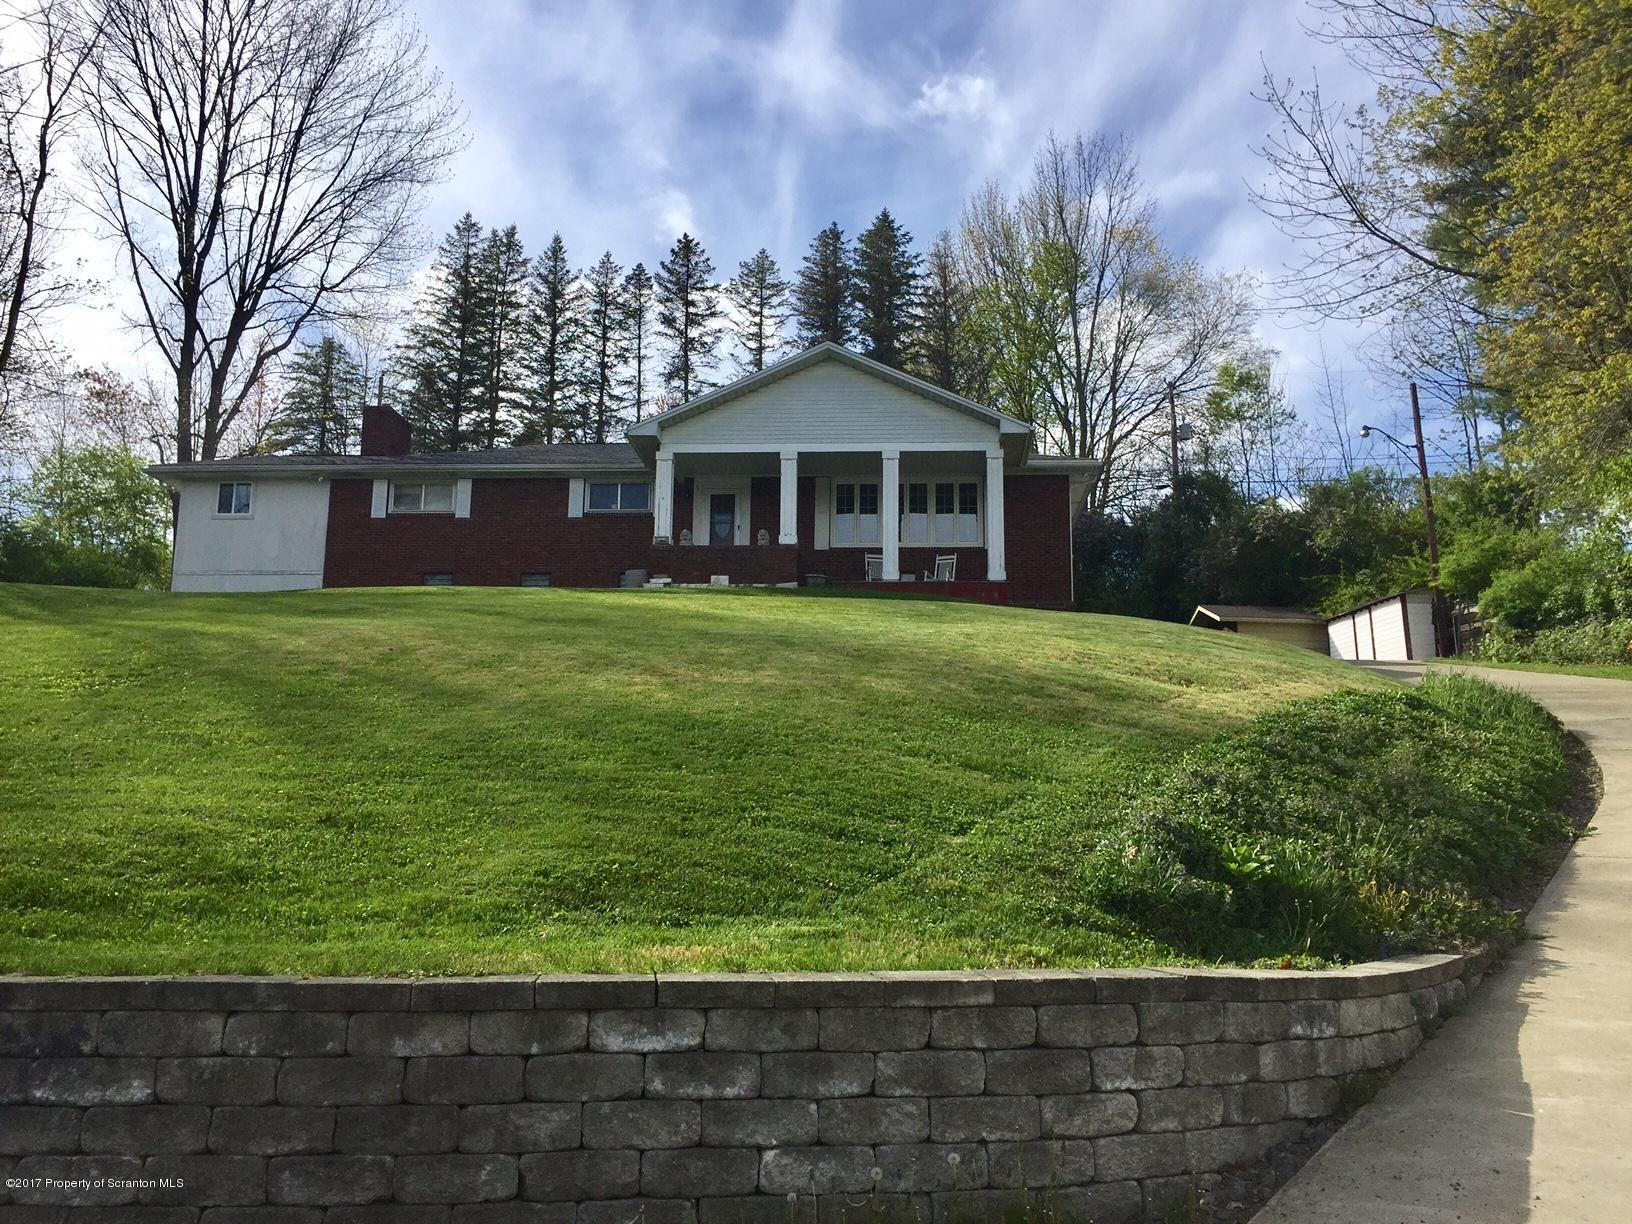 121 Baylor Rd, Nicholson, Pennsylvania 18446, 4 Bedrooms Bedrooms, 8 Rooms Rooms,3 BathroomsBathrooms,Single Family,For Sale,Baylor,20-3460